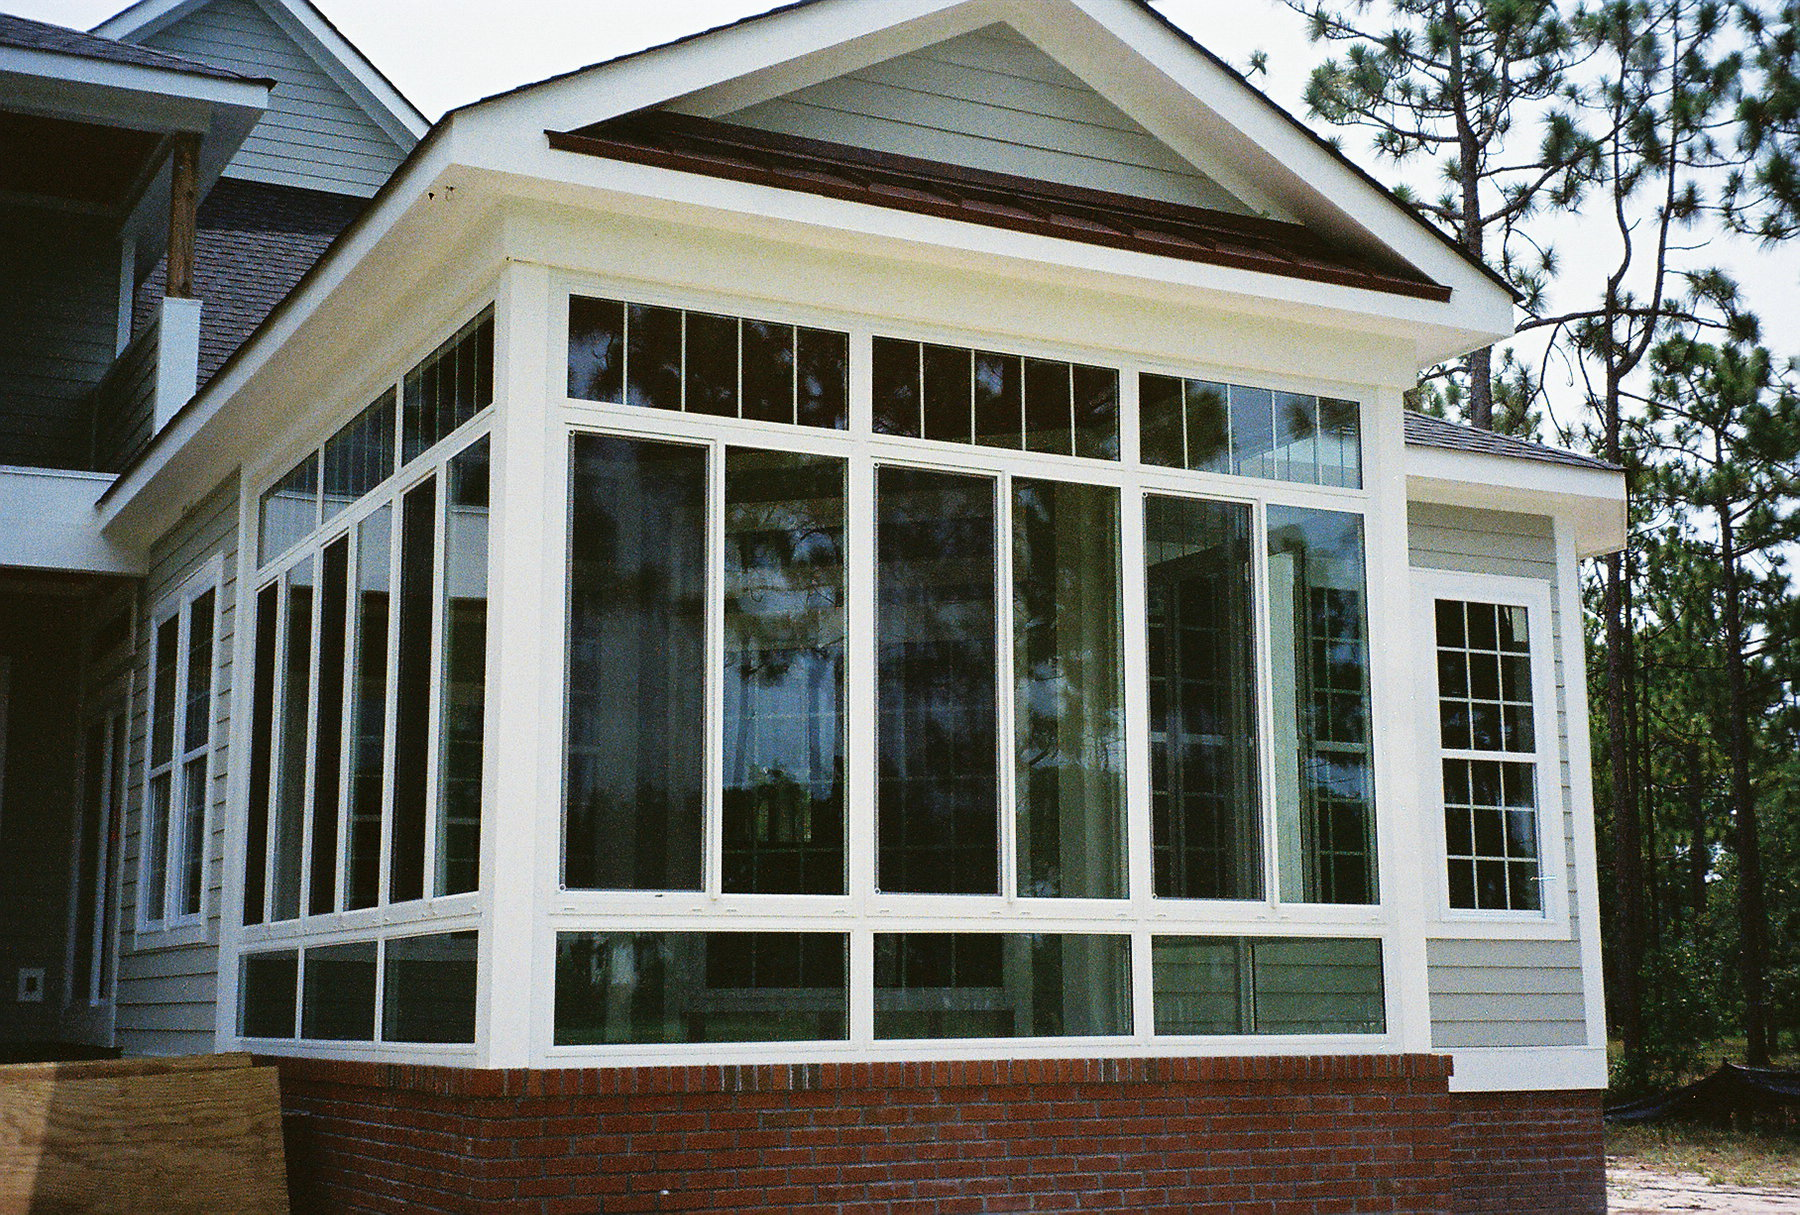 Southern Exposure Sunrooms image 1